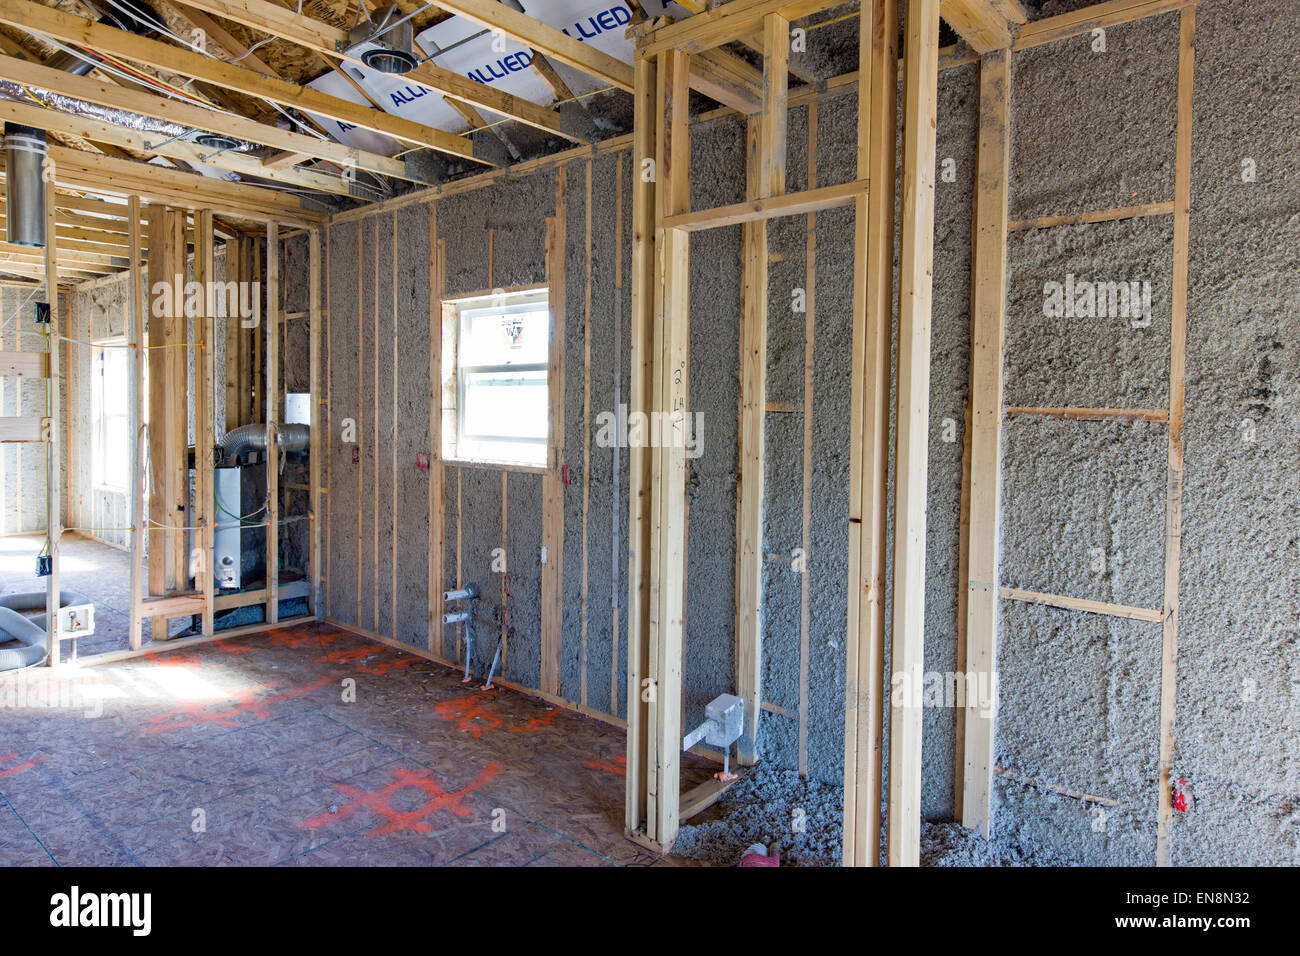 Interior frame walls with blown in insulation construction of a Craftsman Style residential home in Colorado USA & Interior frame walls with blown in insulation construction of a ...